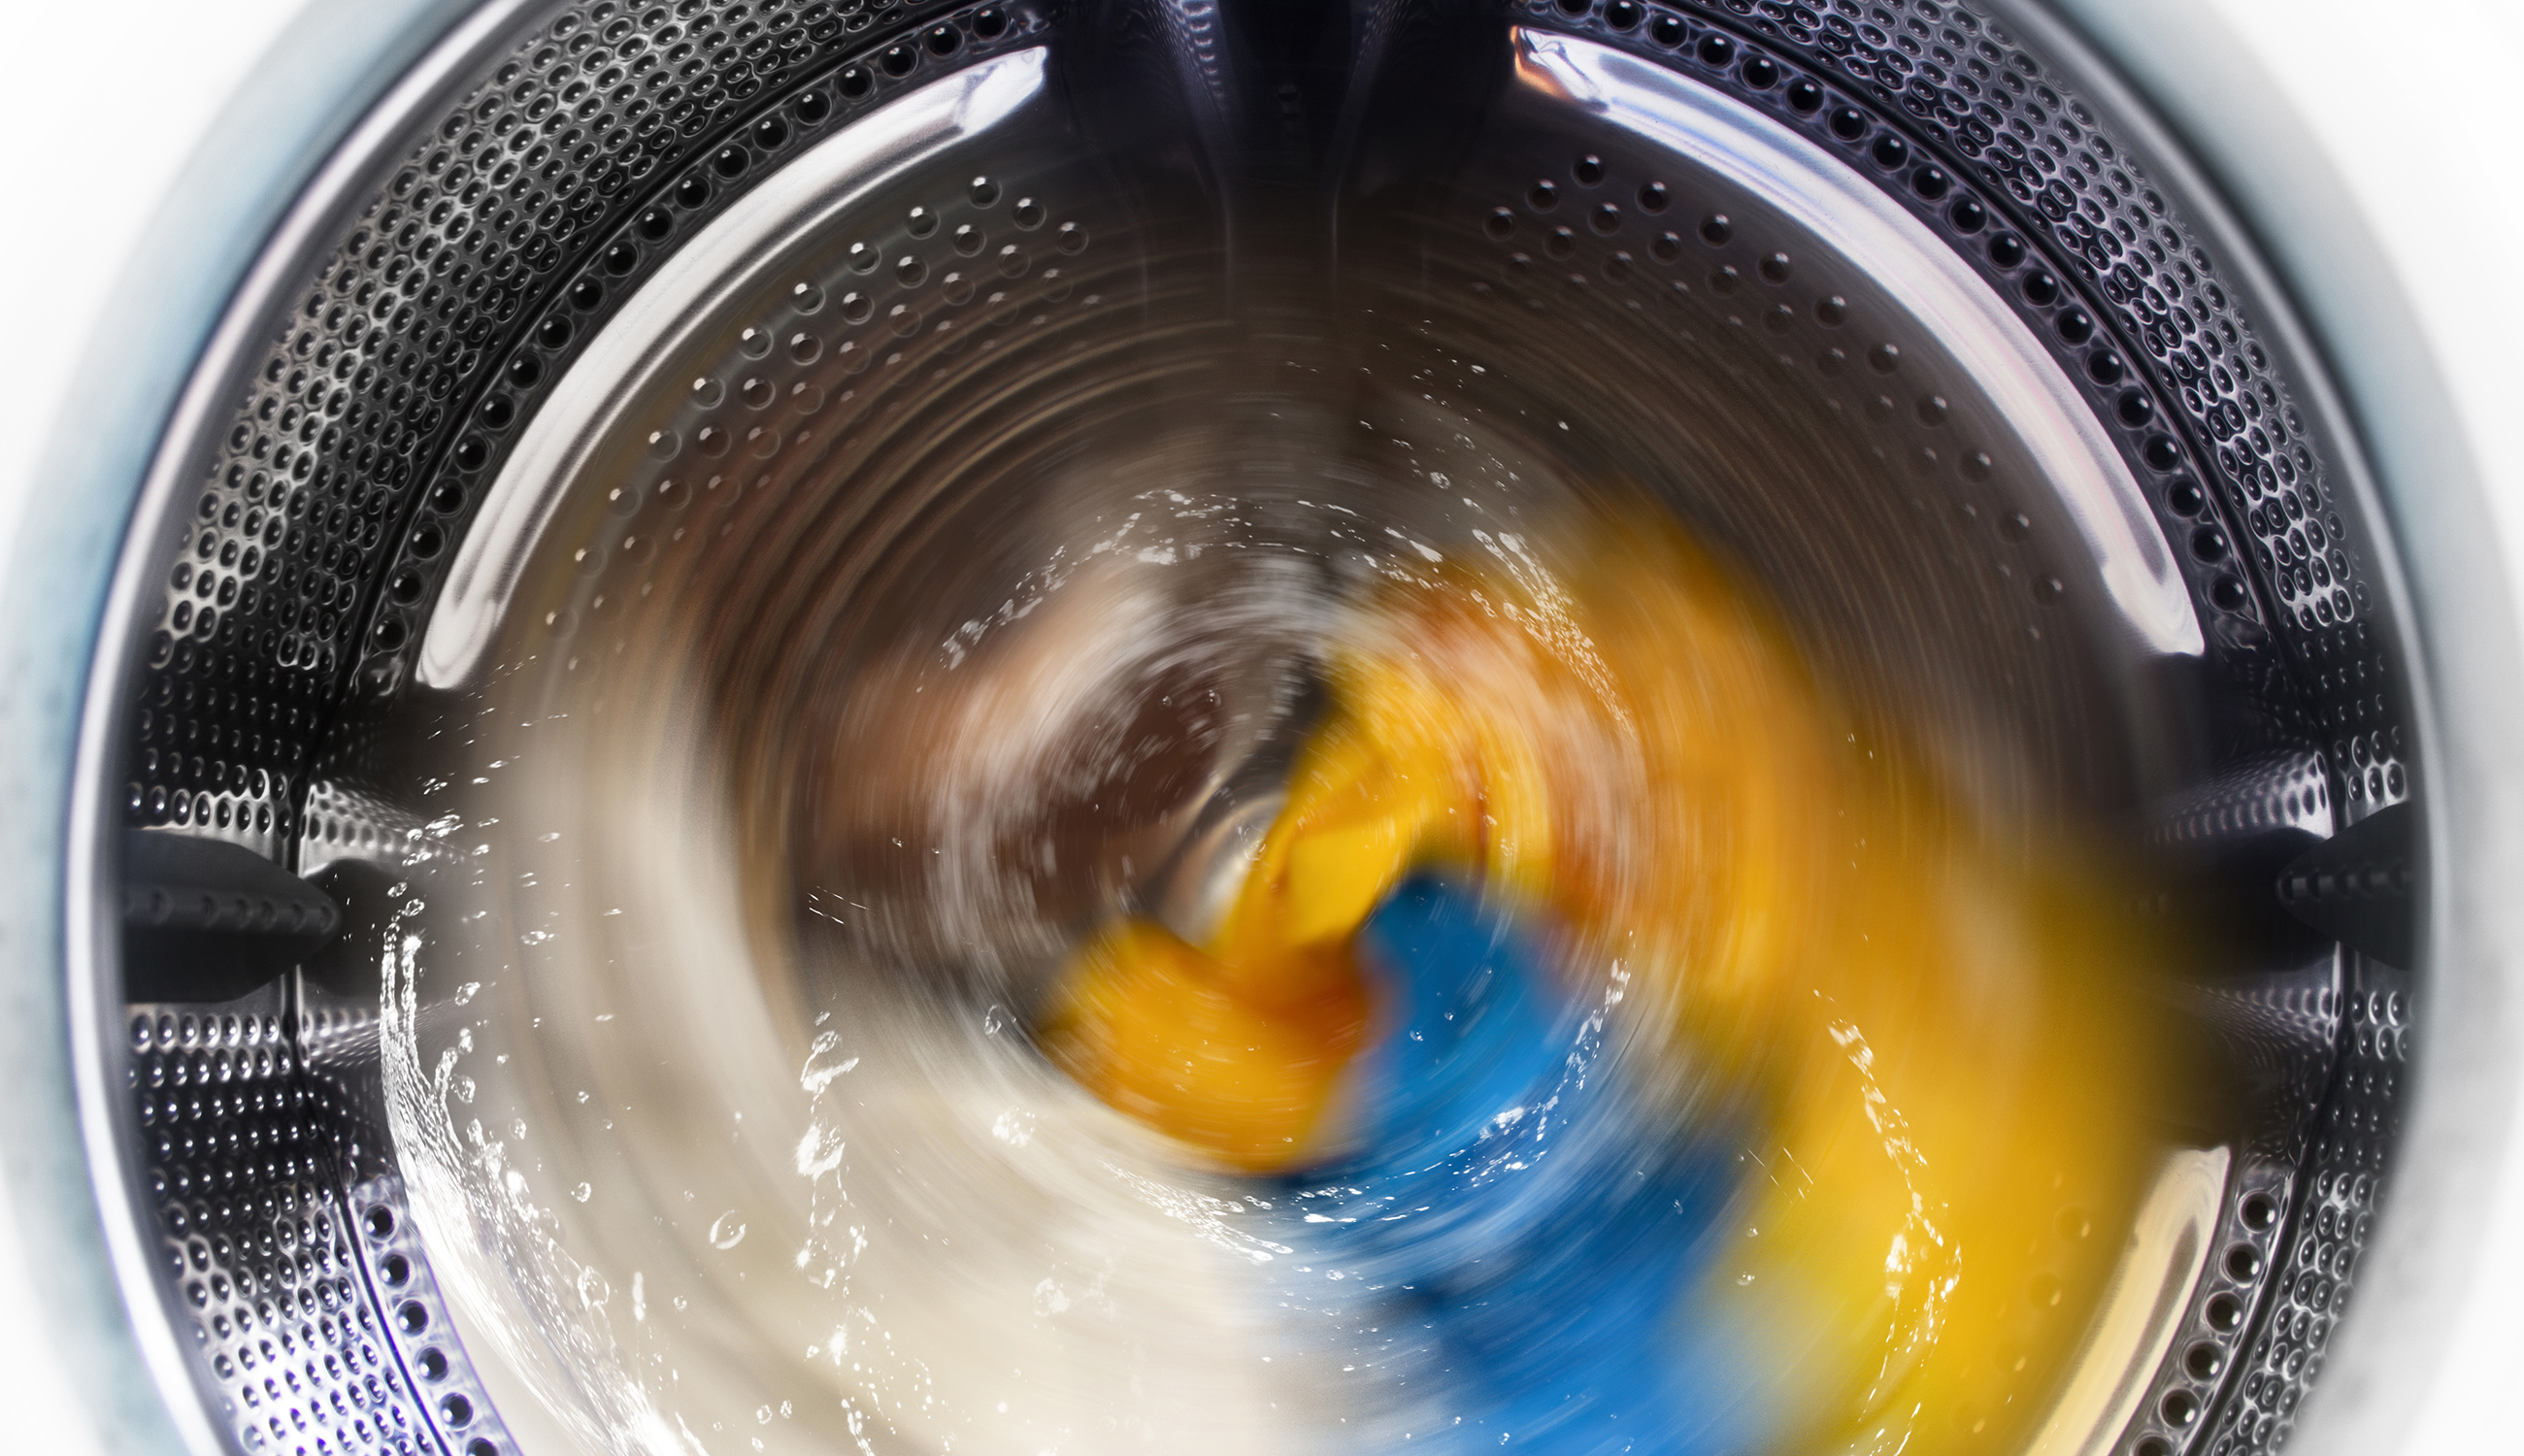 View inside the washing machine while washing laundry. Splashing water.